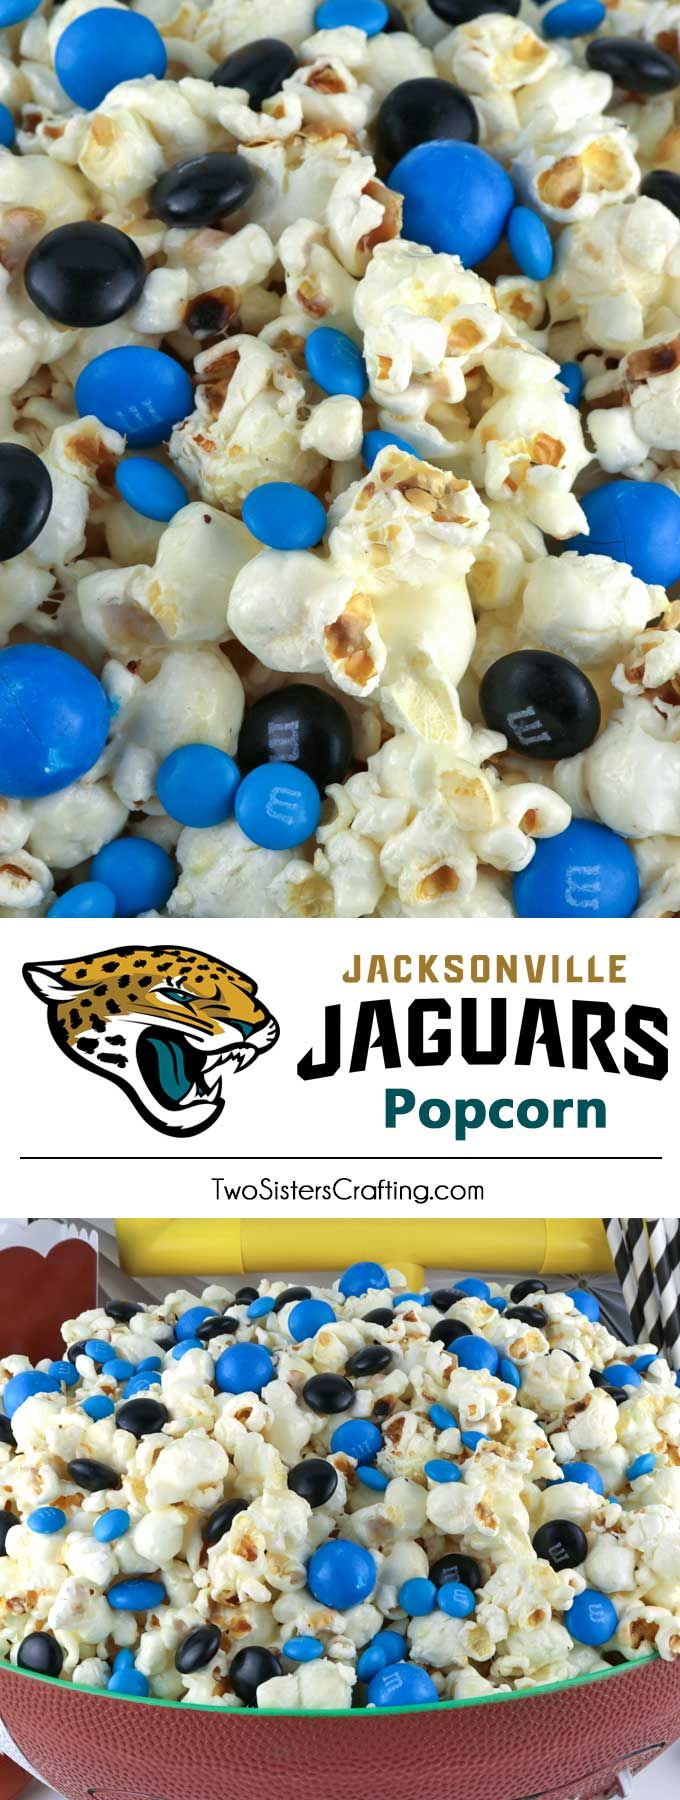 Jacksonville Jaguars Popcorn for those Jacksonville Jaguars fans in your life. Sweet, salty, crunchy and delicious and it is extremely easy to make. This delicious popcorn will be perfect at your next game day football party. a NFL playoff party or a Super Bowl party. Follow us for more fun Super Bowl Food Ideas. #jacksonvillejaguars #jaguars #superbowl #superbowlparty #superbowlfood #jacksonvillejaguarsfood